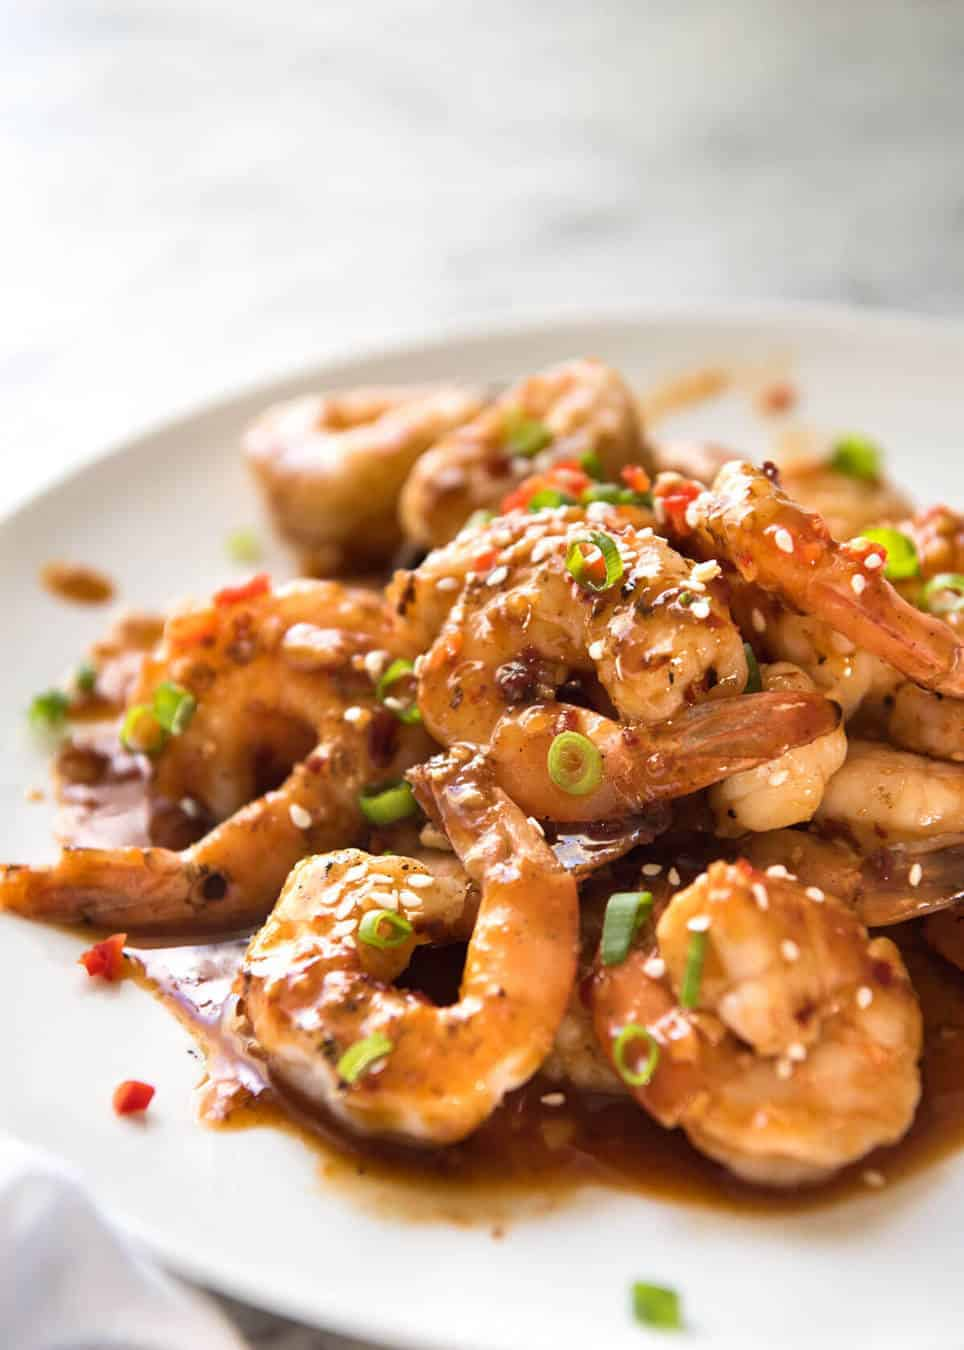 Asian Chilli Garlic Prawns - Juicy prawns in a sweet, sticky, spicy, garlicky sauce. Dinner on the table in 10 minutes! www.recipetineats.com